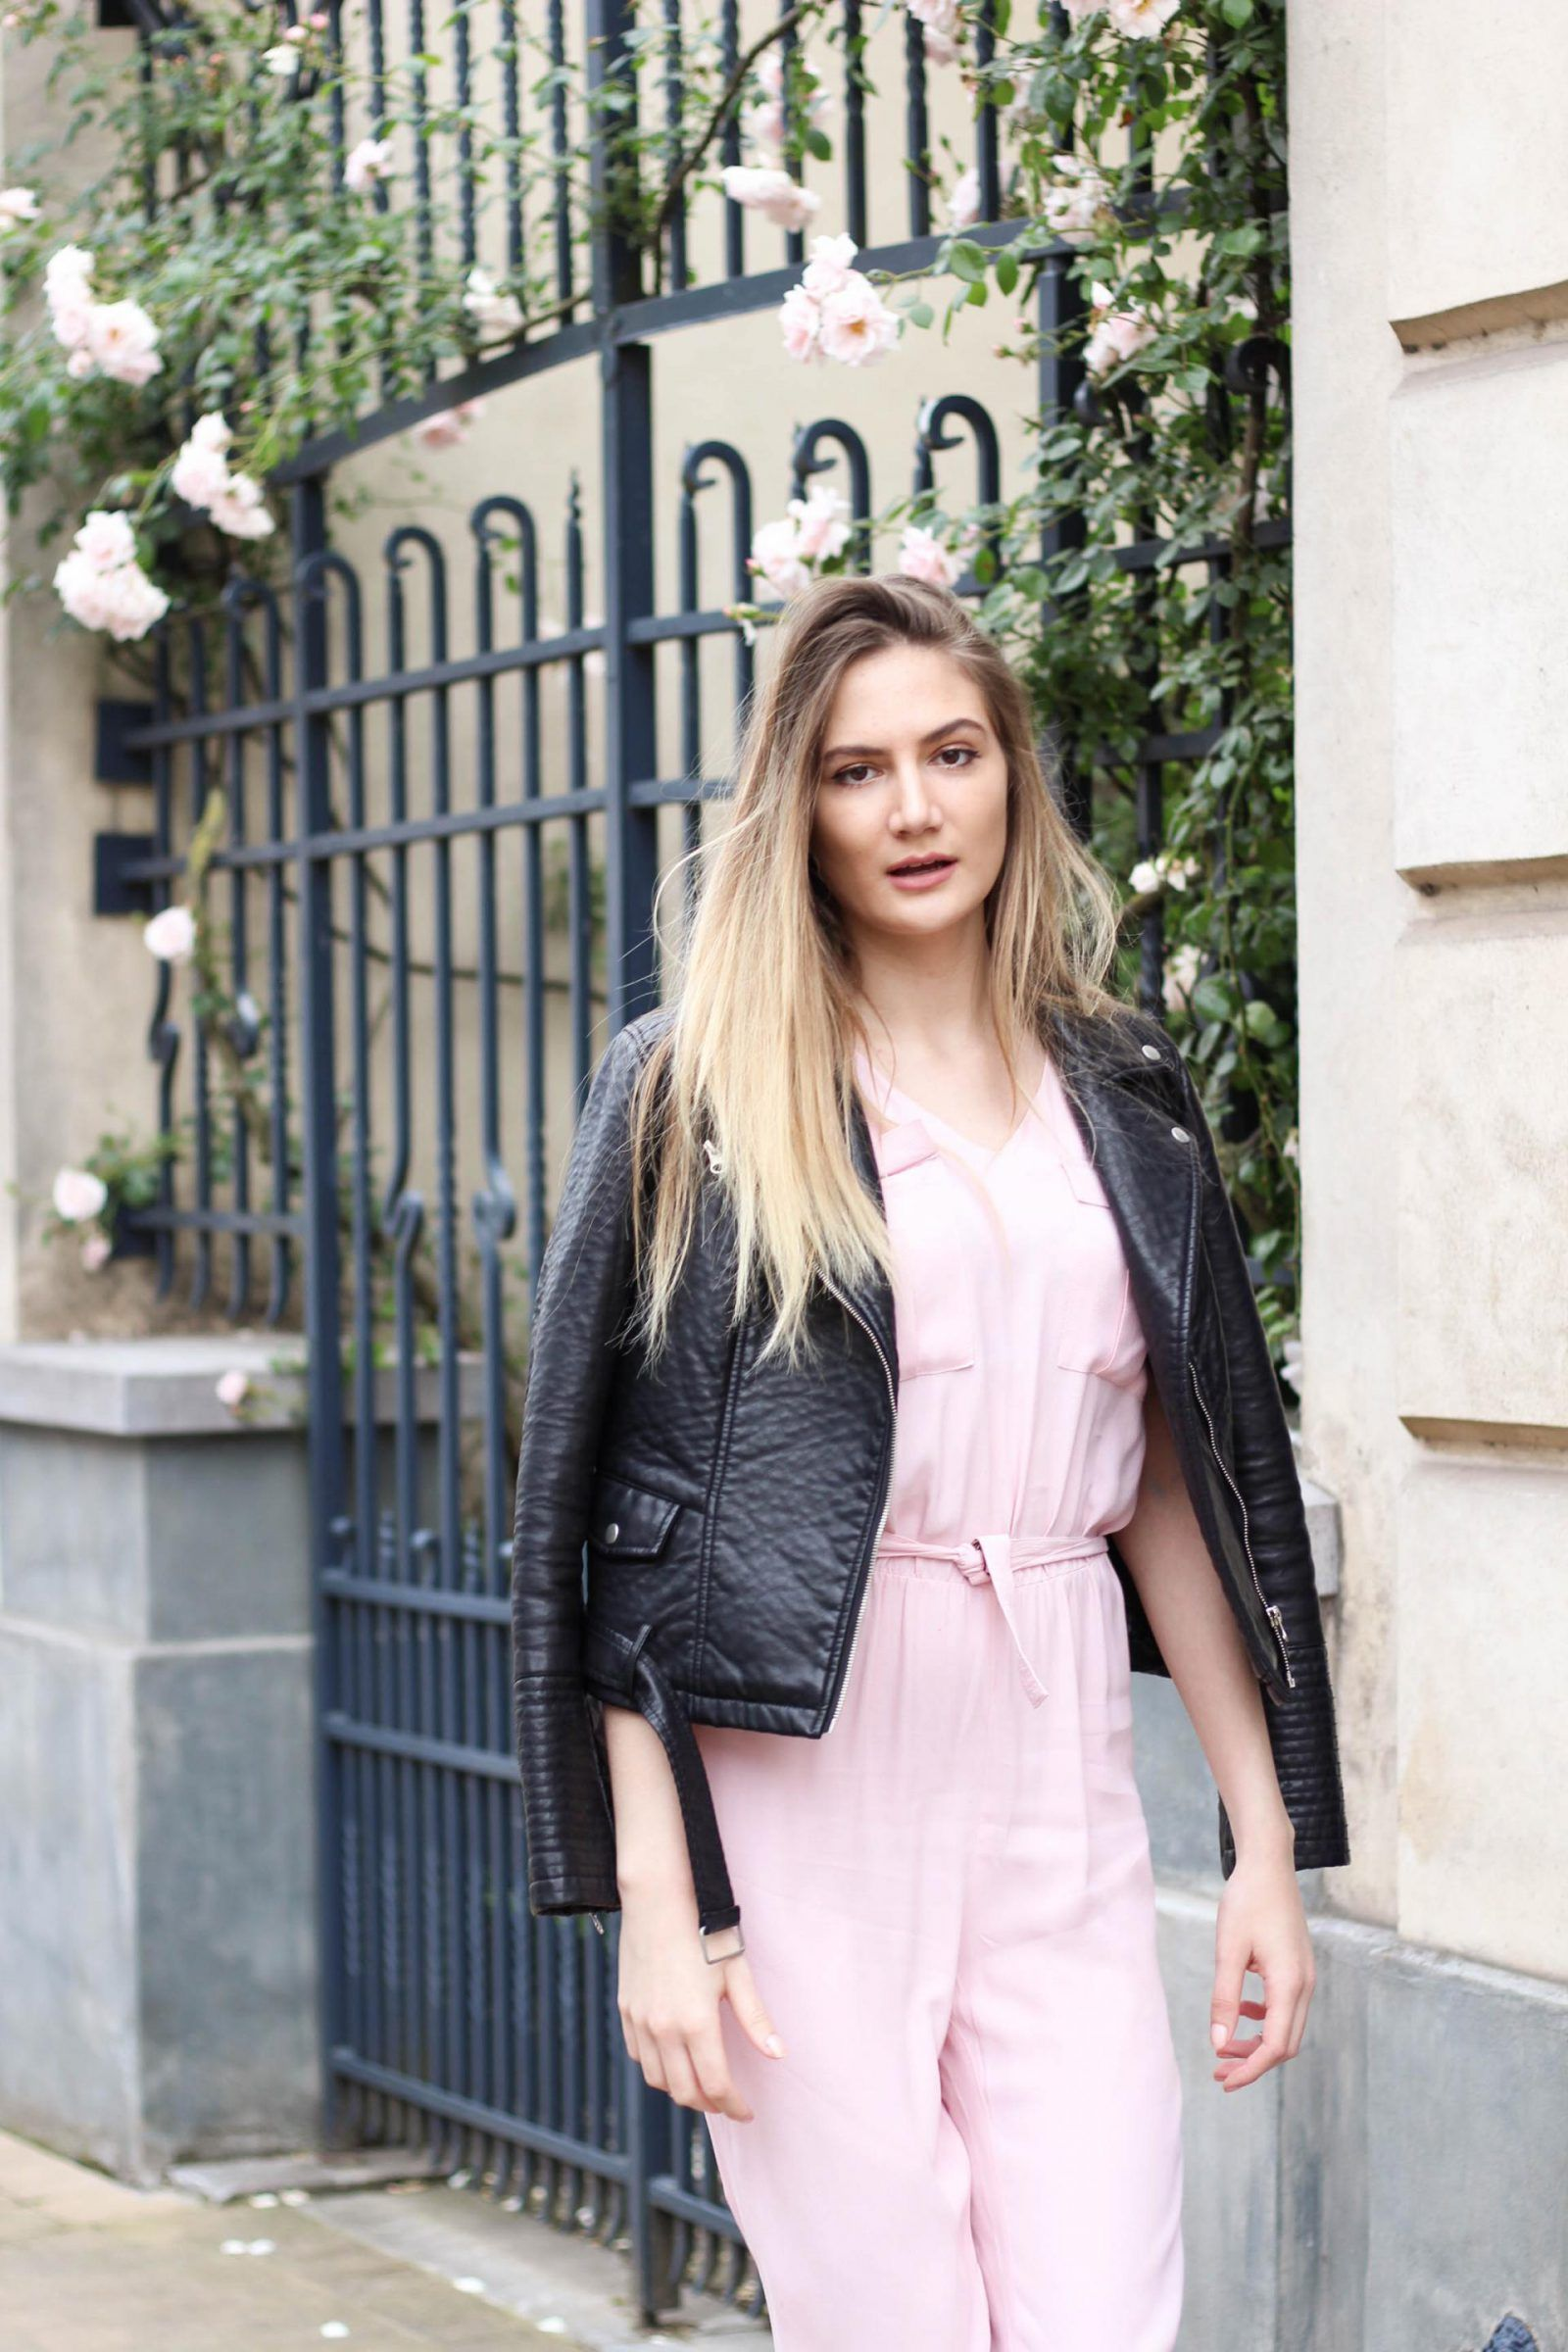 Leather jacket in summer - Pink Jumpsuit Black Leather Jacket Summer Outfit